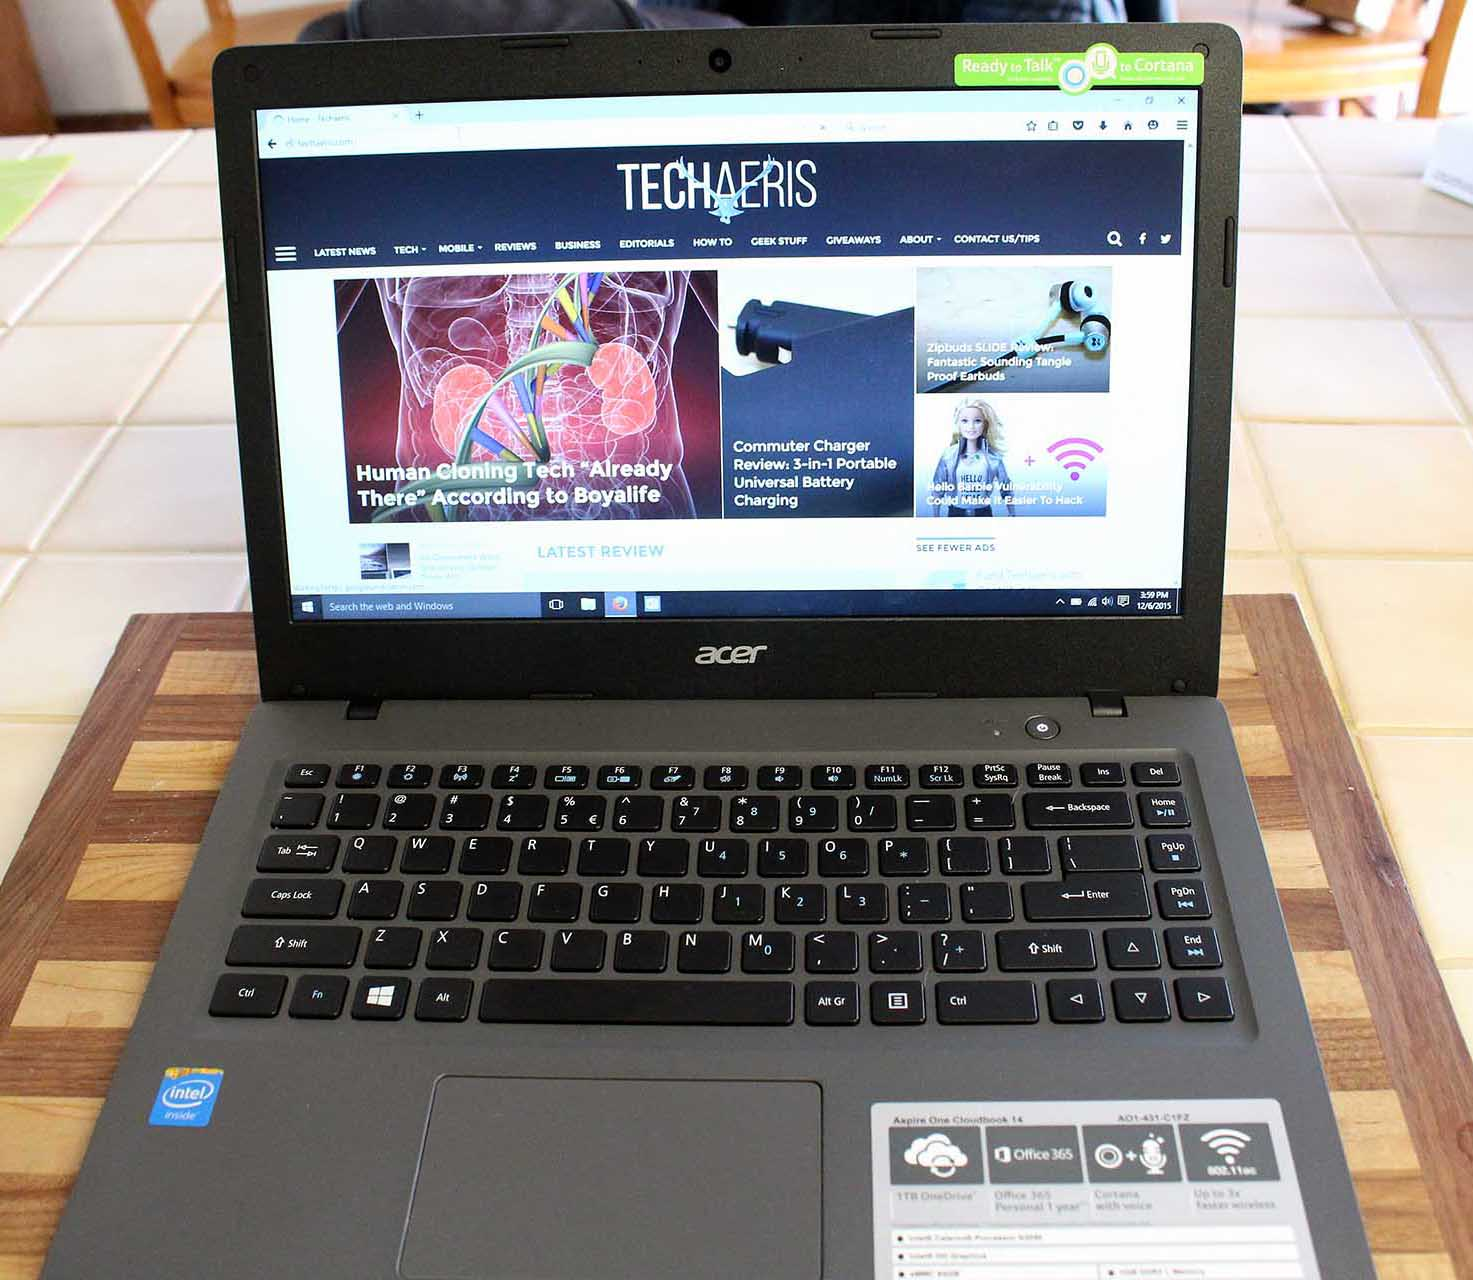 The Acer Cloudbook 14 display